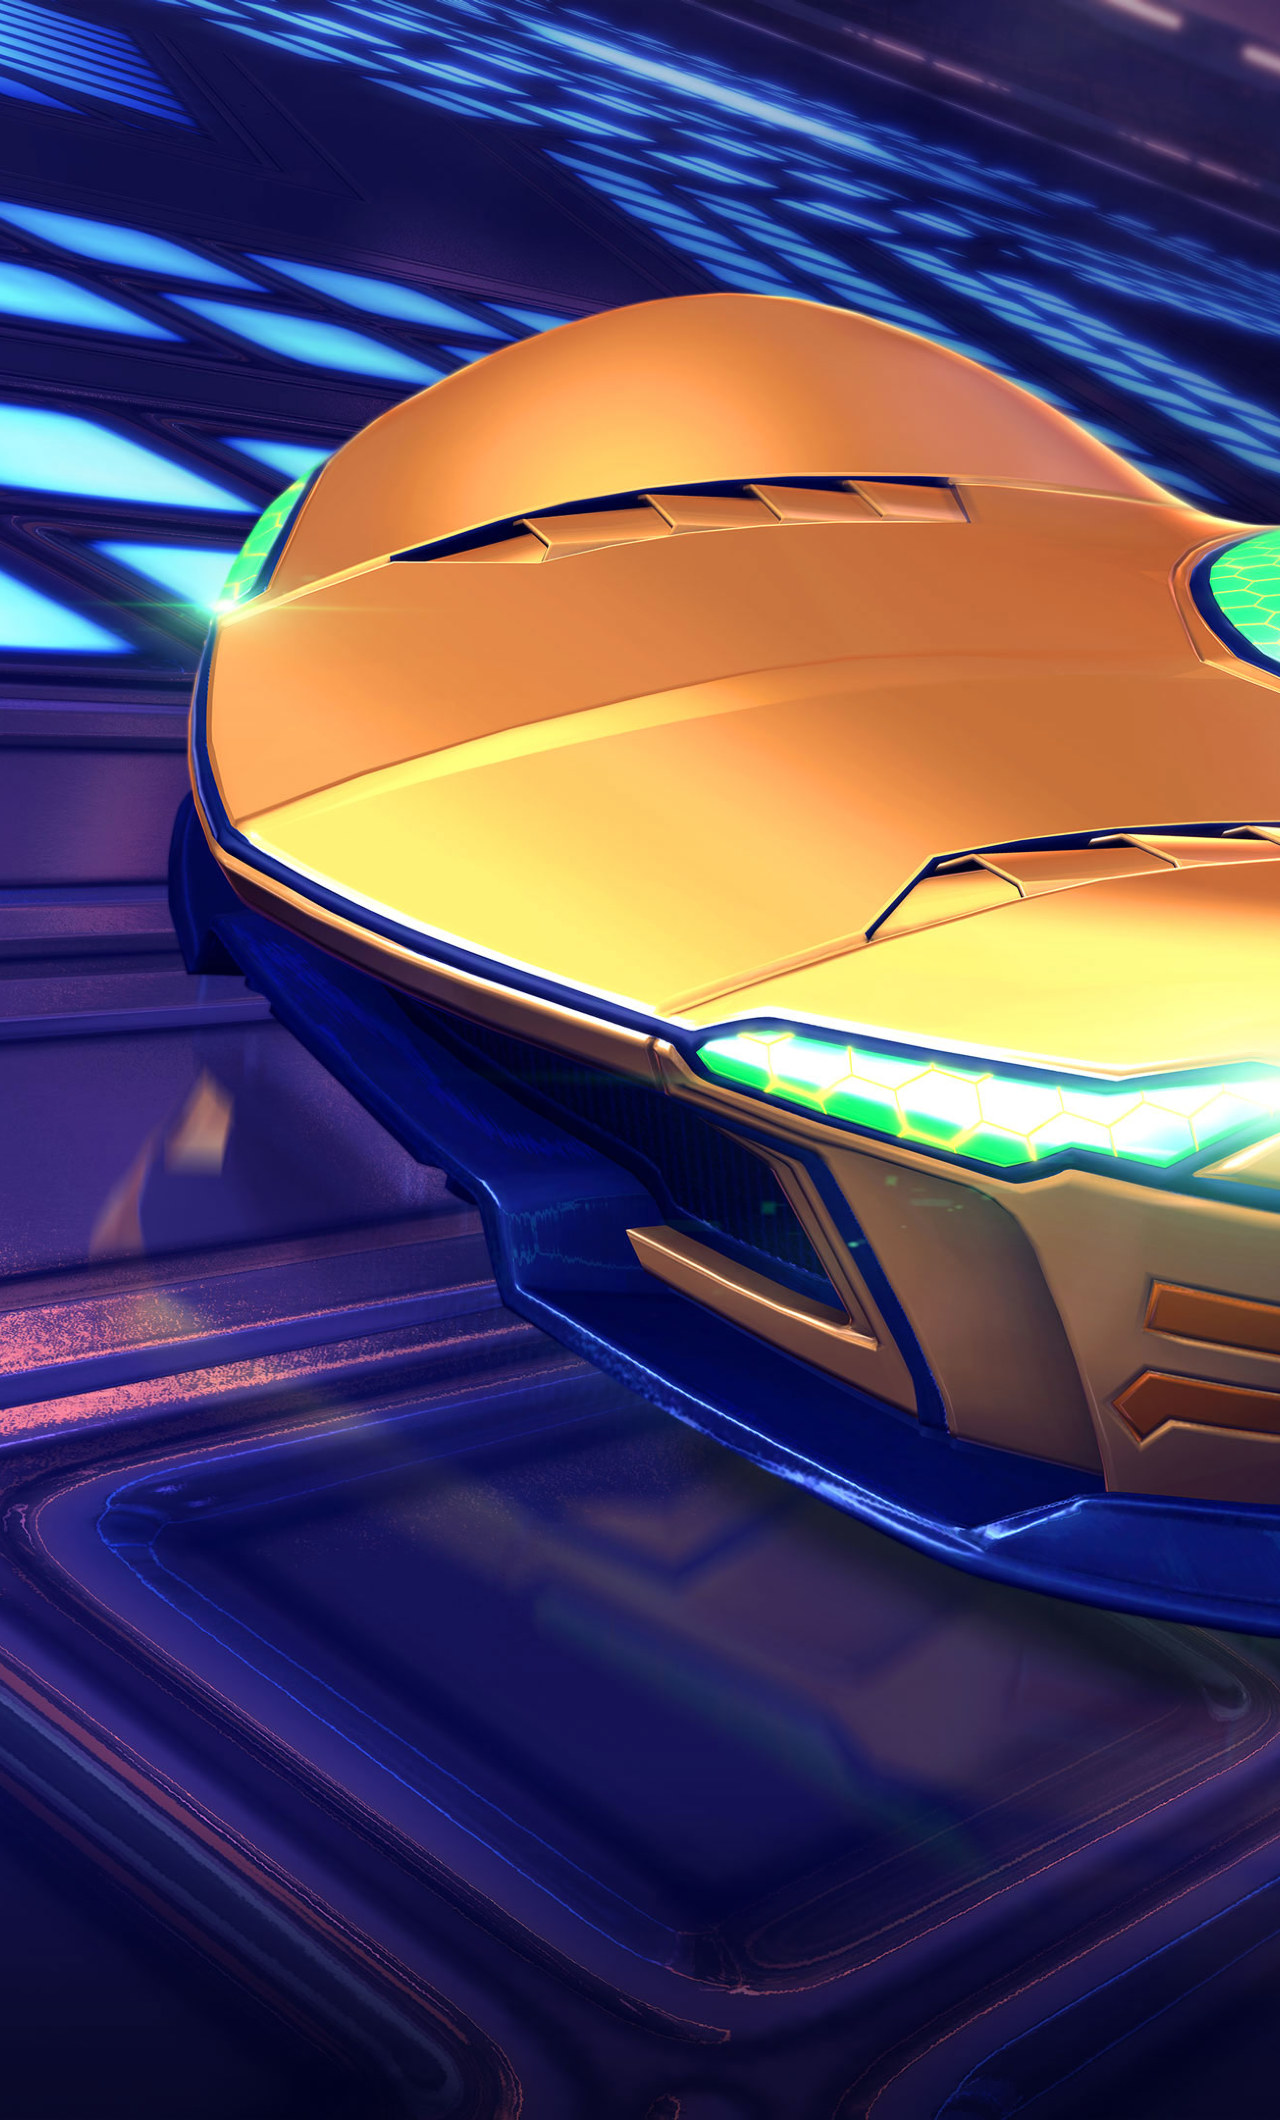 Hd Wallpaper Season 6 Rocket League 300708 Hd